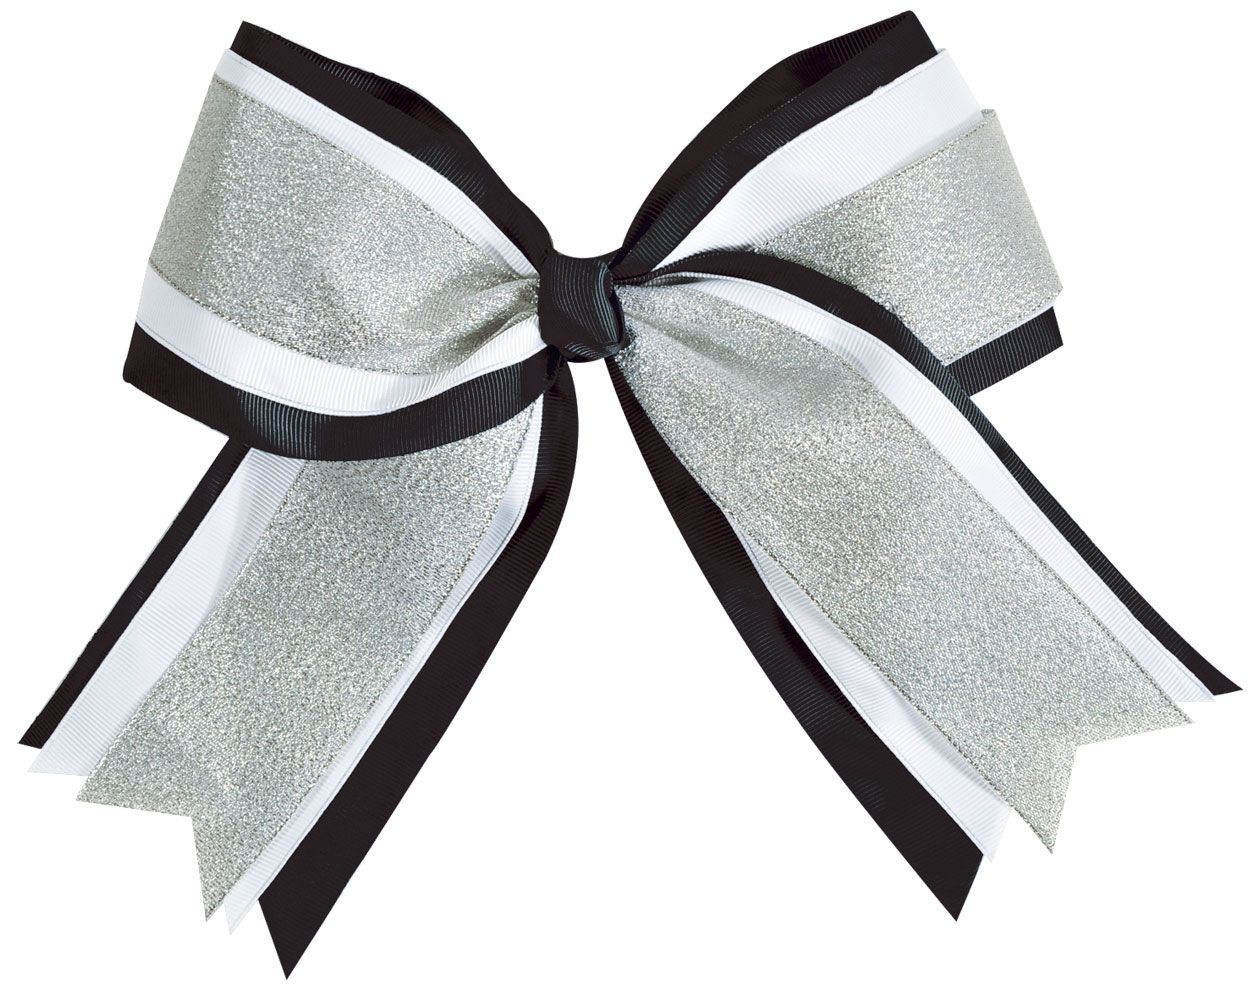 Ribbon clipart cheerleader. Omnicheer your one stop